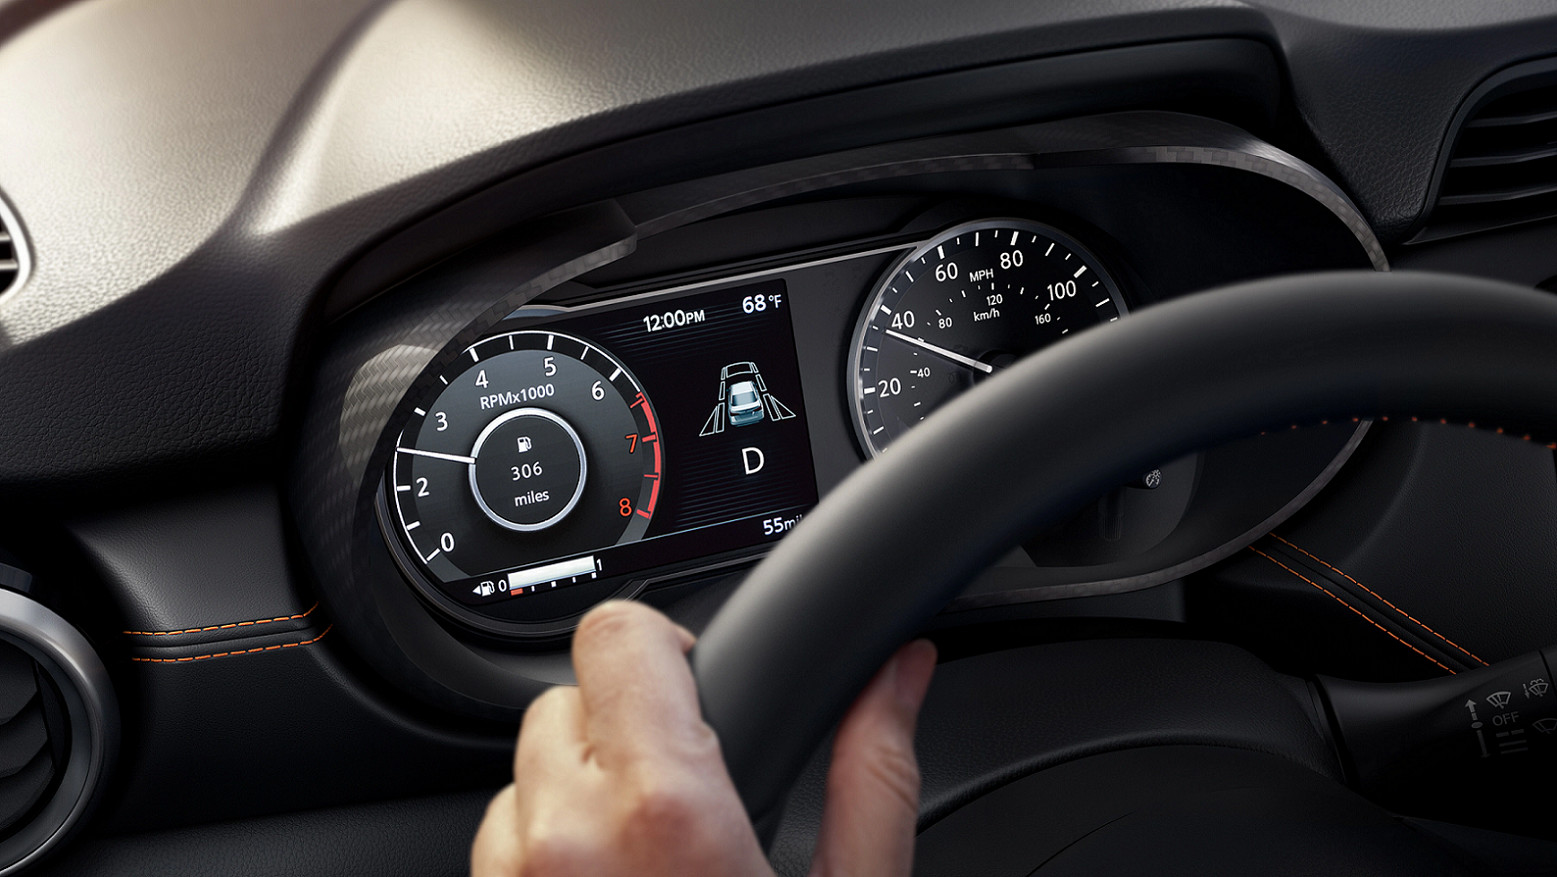 Instrumentation Panel of the 2020 Nissan Versa